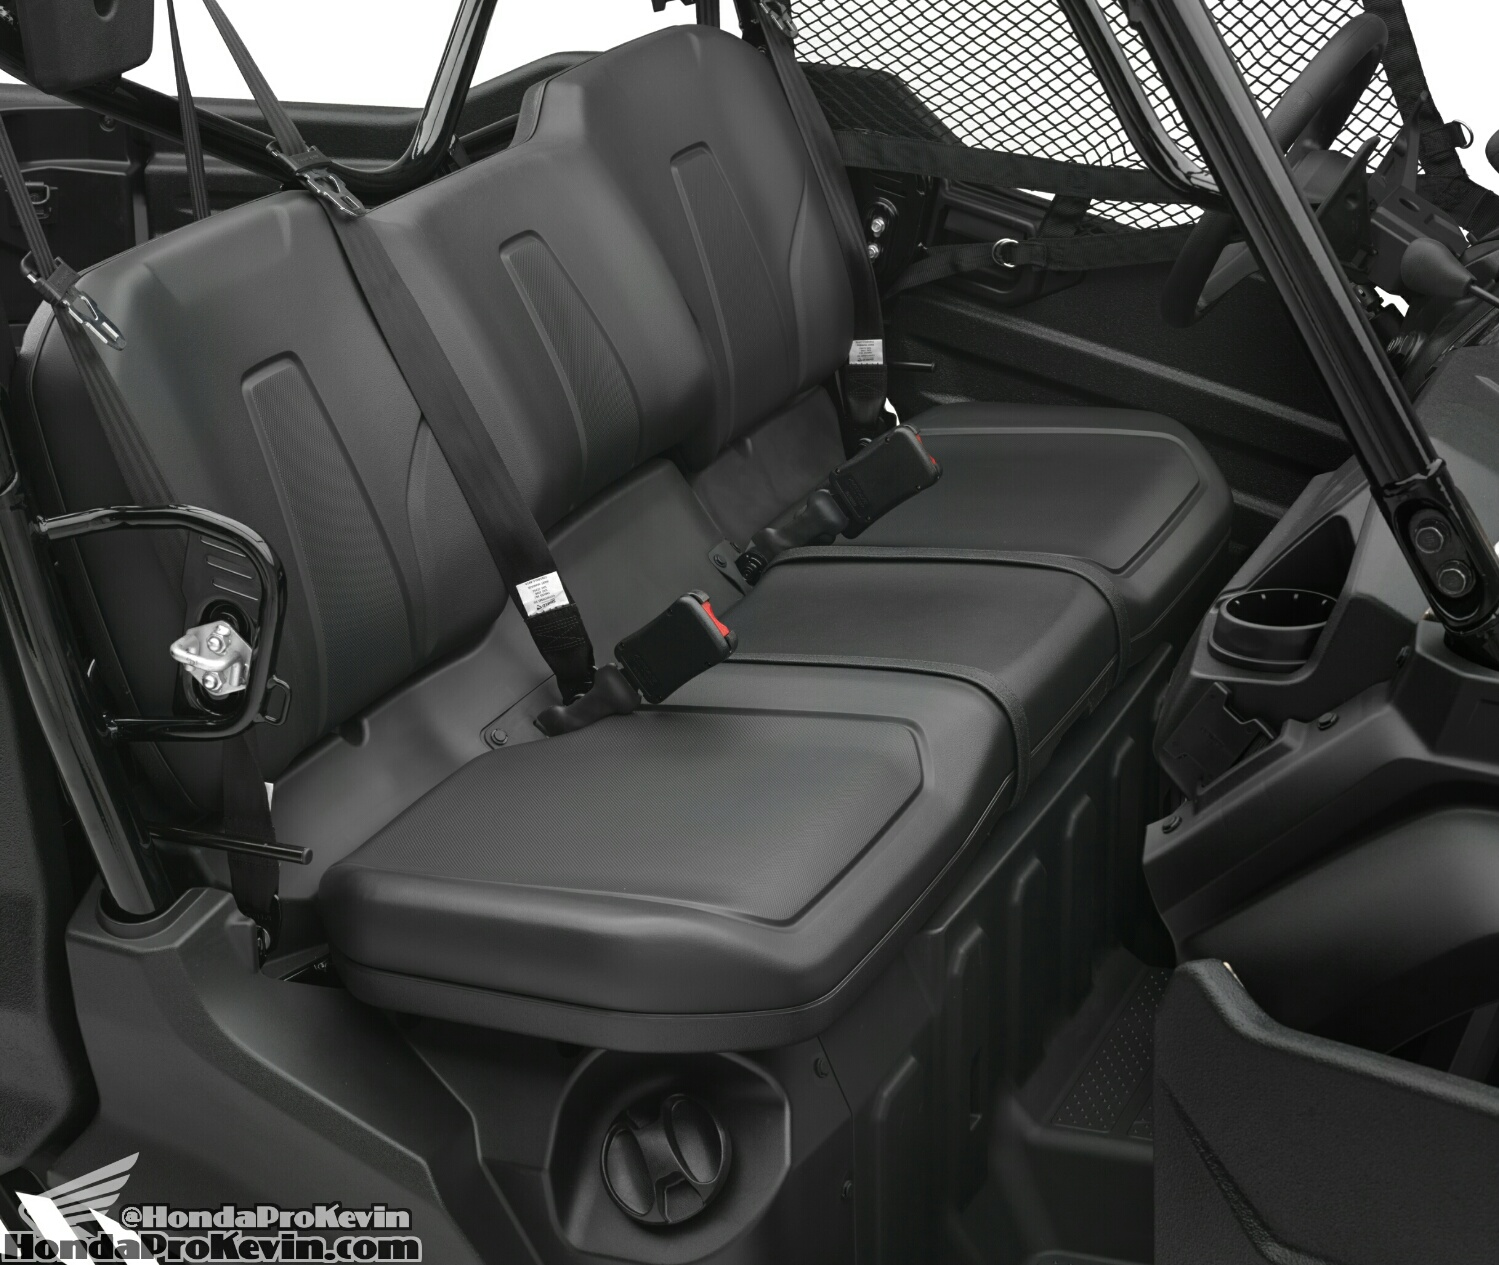 2018 Honda Pioneer 1000 & 1000-5 Seats - Interior - Frame, Suspension, Engine Pictures - Photo Gallery - SxS / UTV / Side by Side ATV - SXS1000 - SXS1000M3 - SXS1000M5